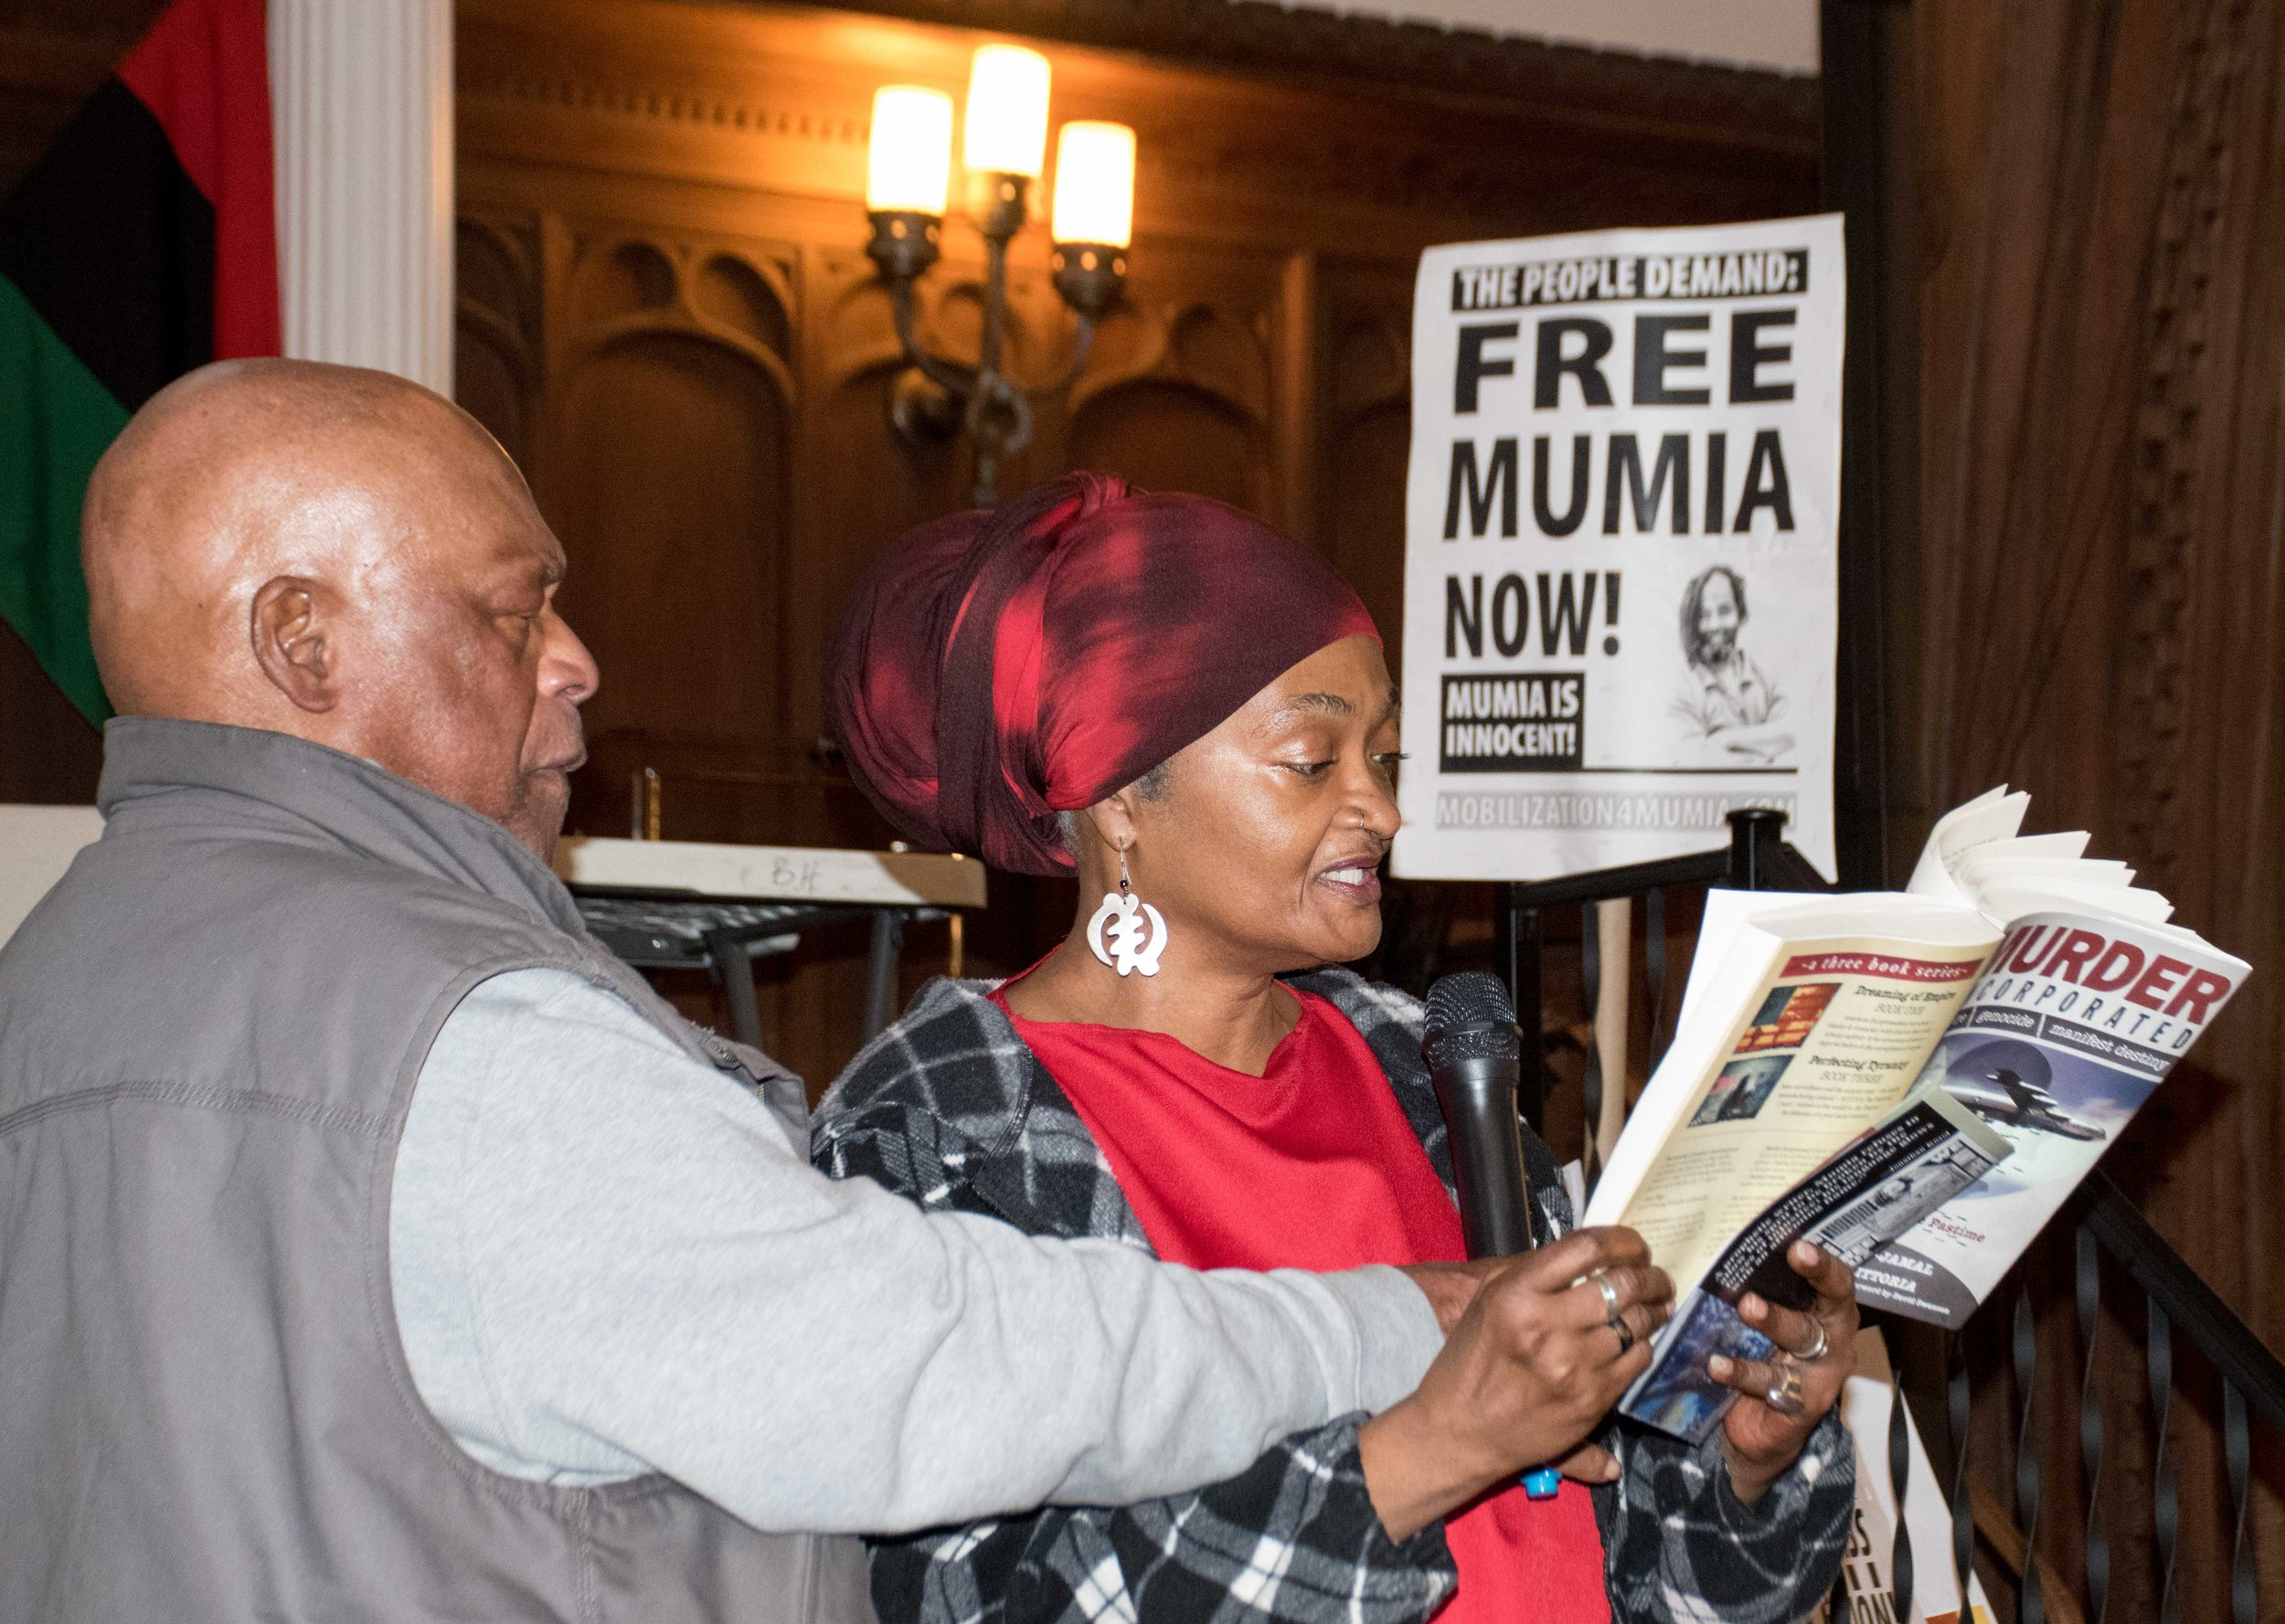 Fatirah Aziz reading from Mumia's new book at People's Sanctuary on April 27. (Mic is being held by Ralph Poynter.)  Photo credit - Joe Piette